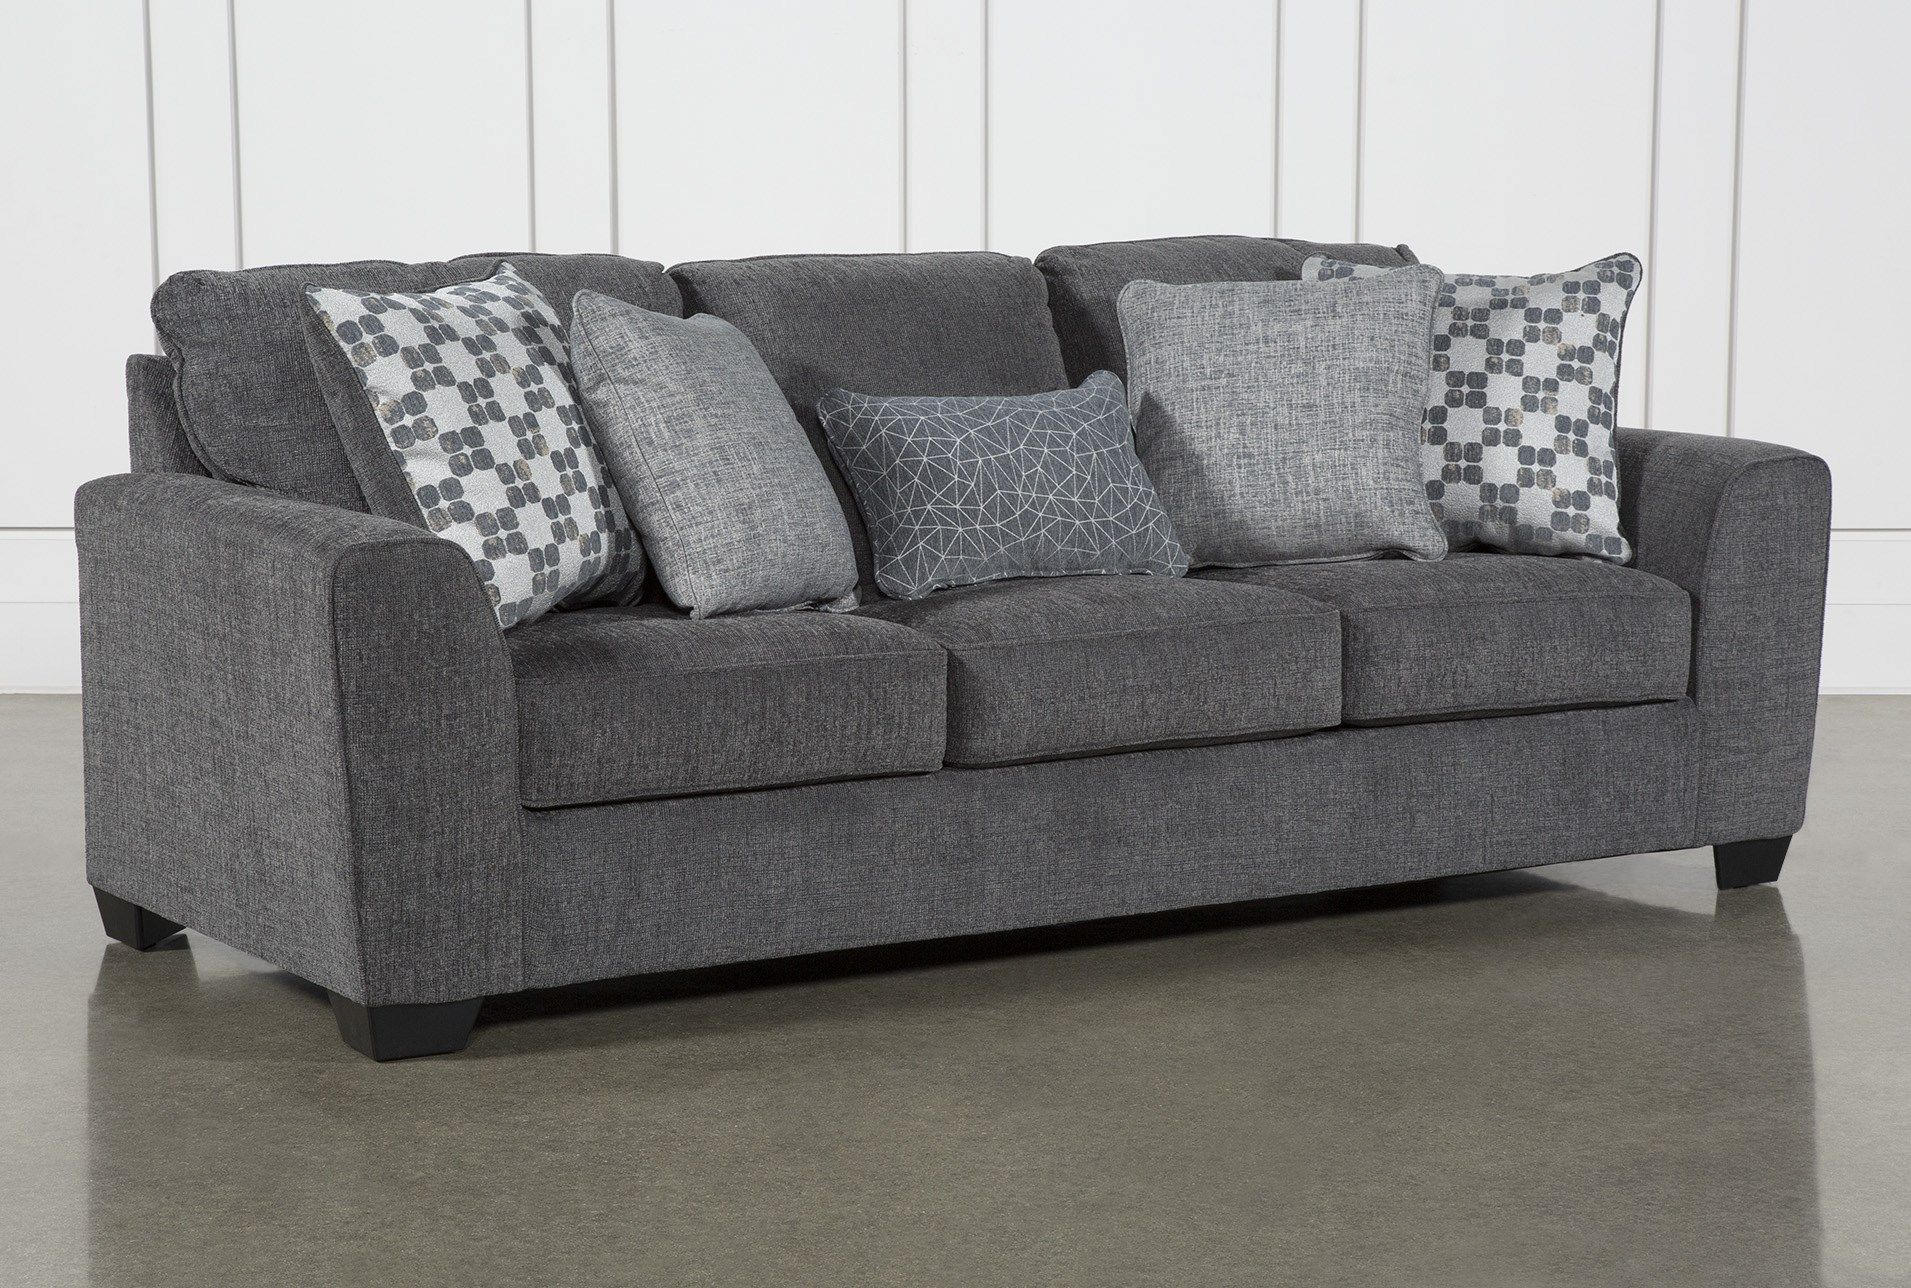 Banks Queen Sofa Sleeper In 2020 Queen Sofa Sleeper Cushions On Sofa Sofa